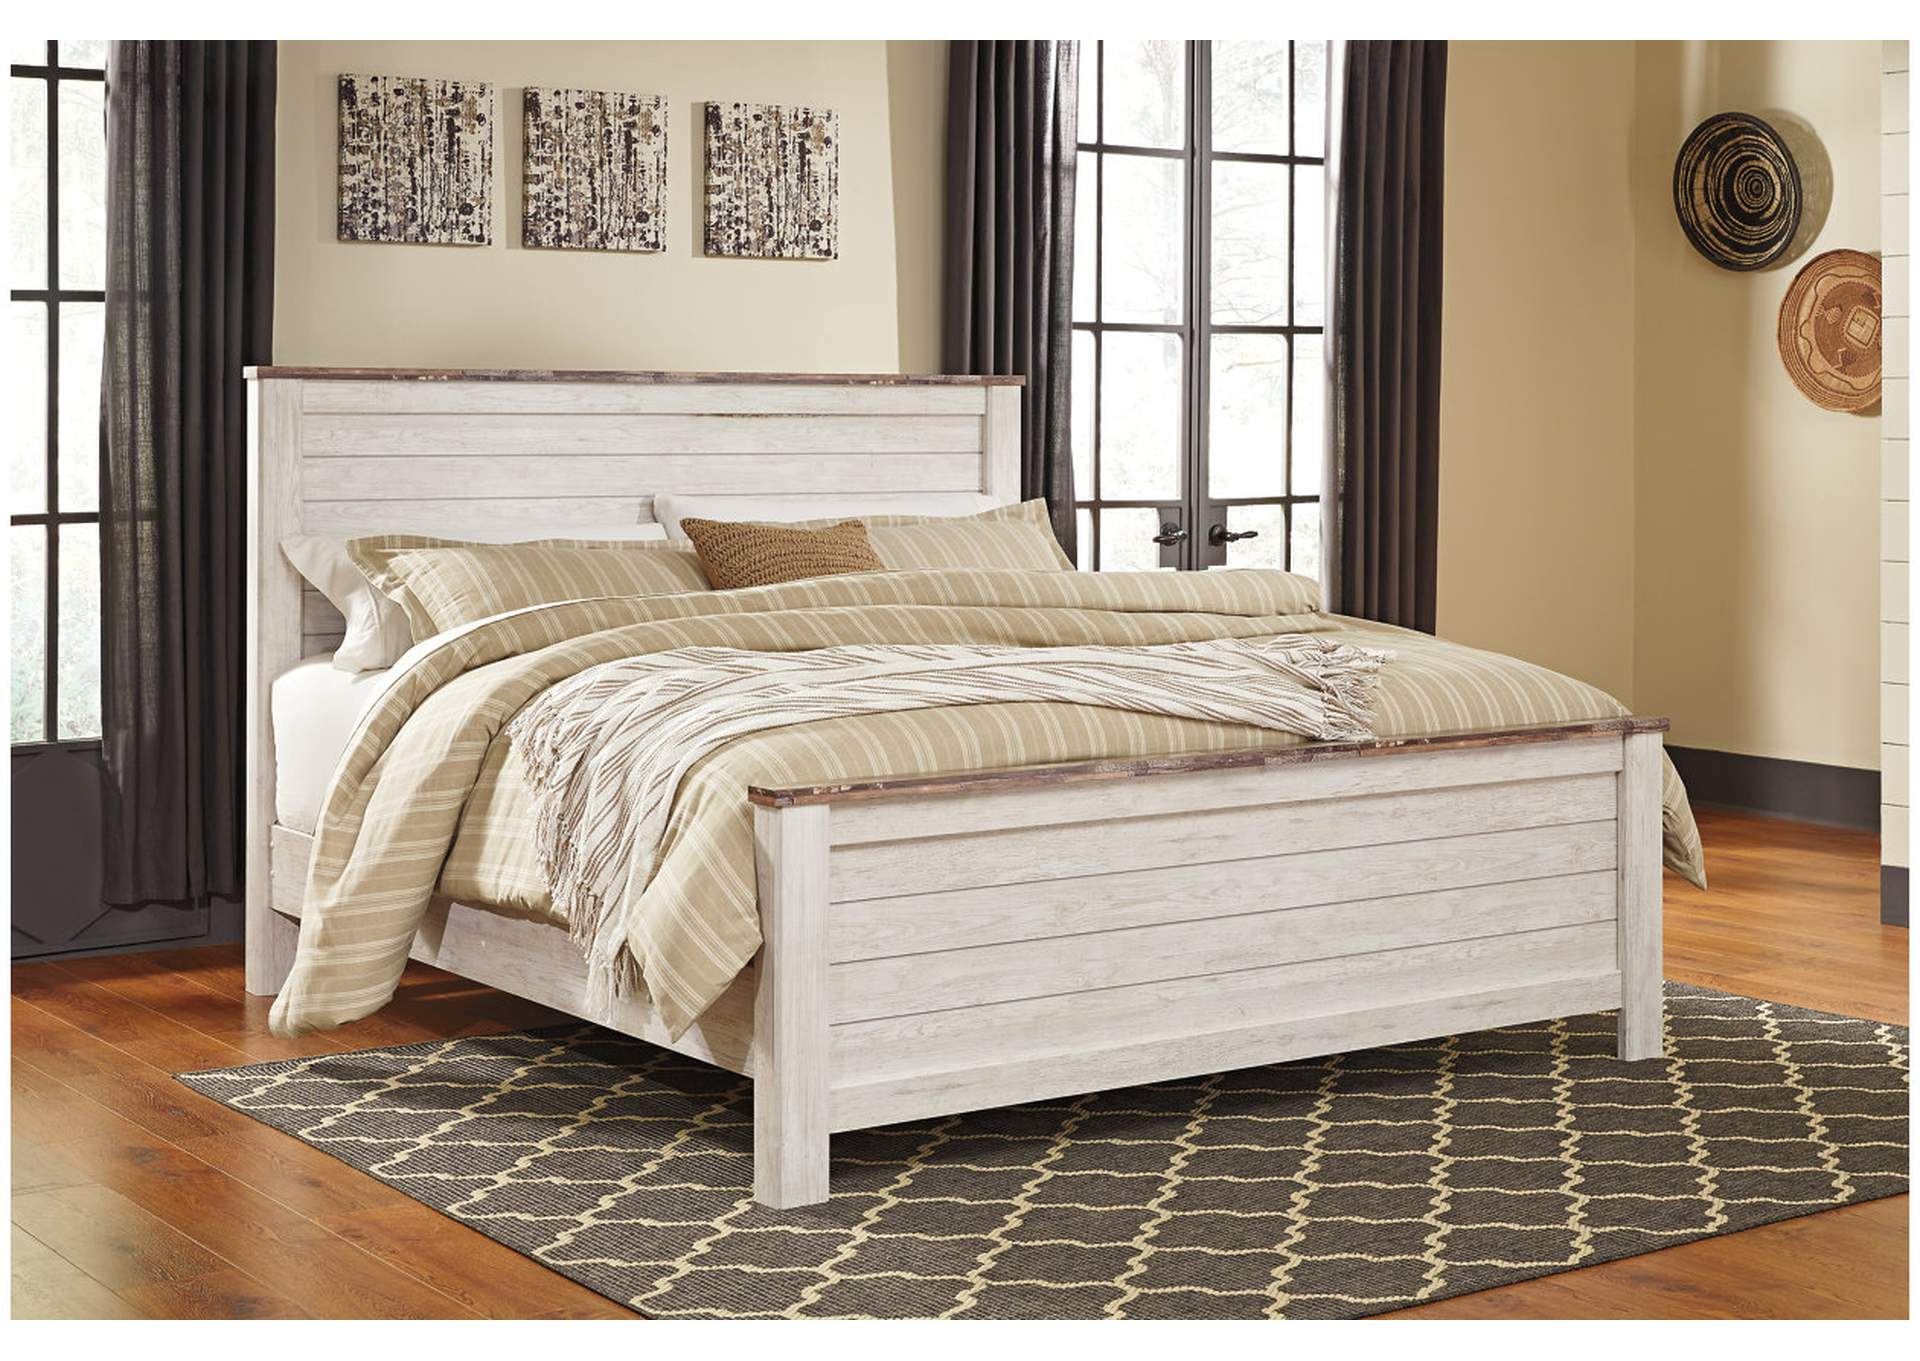 Willowton Whitewash King Panel Bed,Signature Design By Ashley